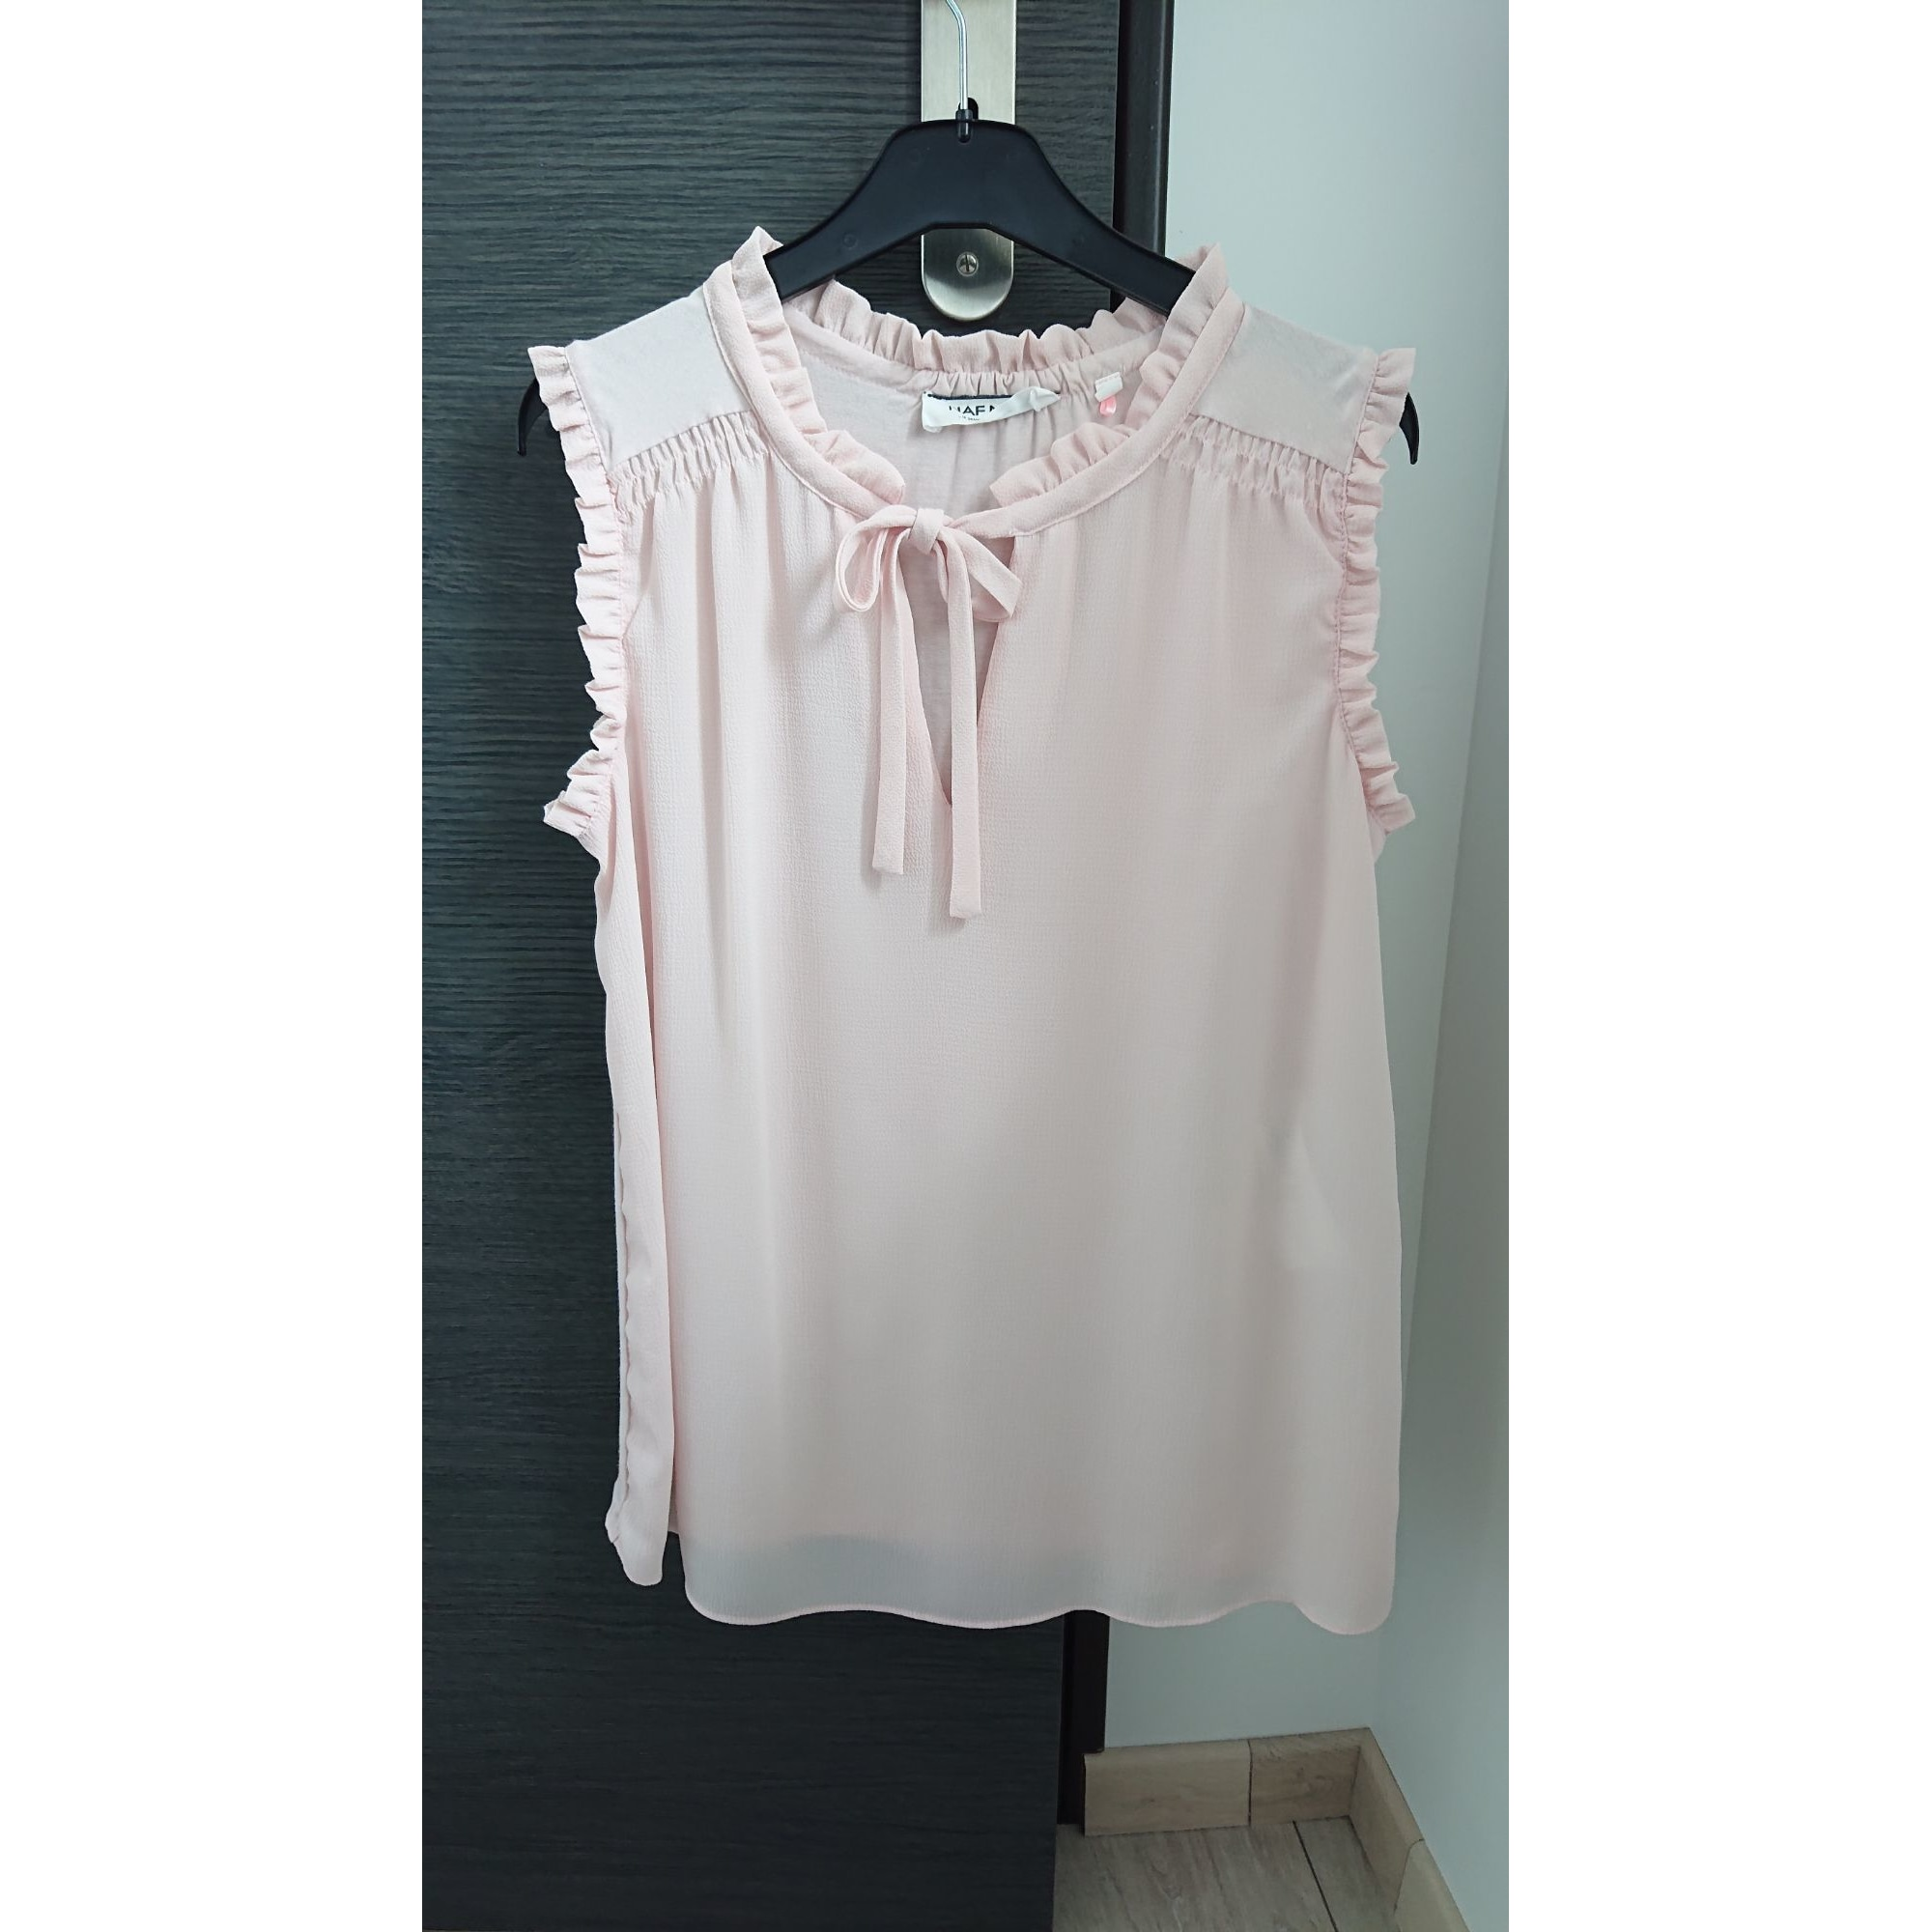 Top, tee-shirt NAF NAF Rose, fuschia, vieux rose